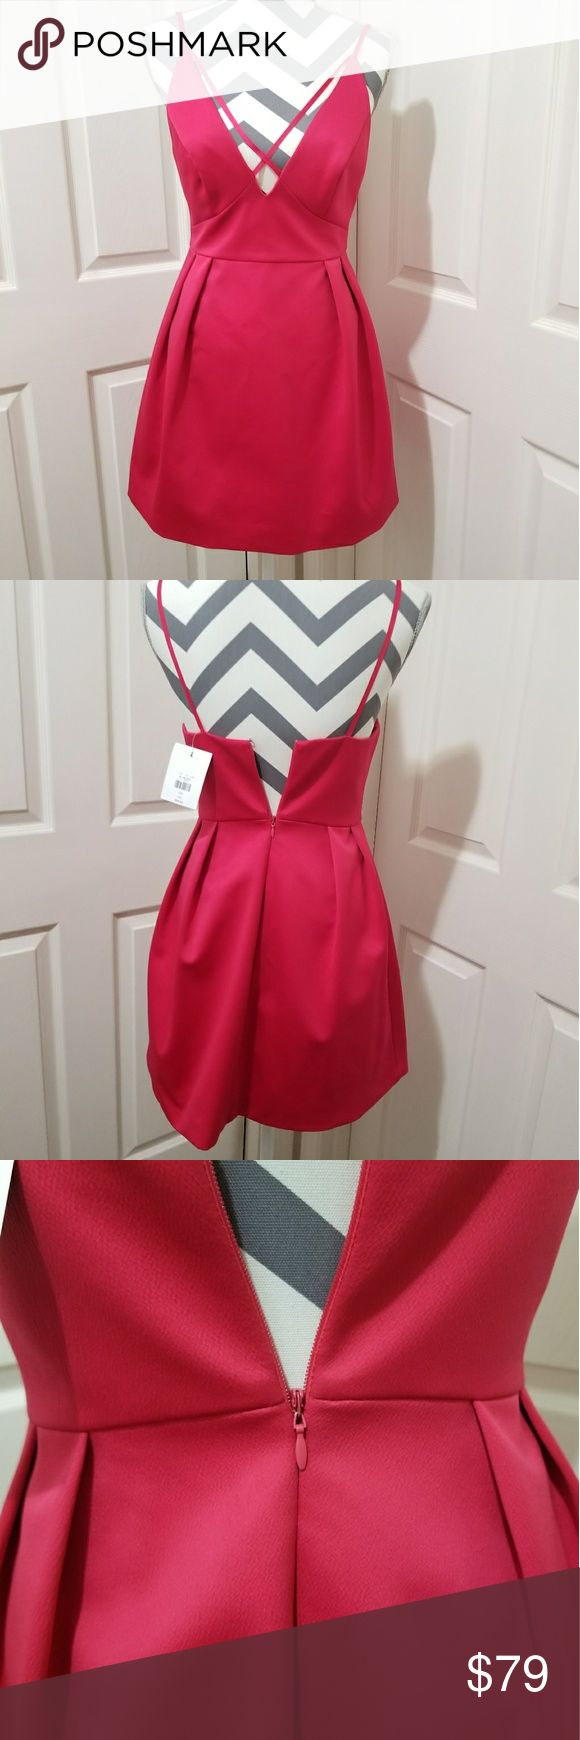 NWT* Stunning Satin V Line Plunge Dress* NWT* Stunning Satin V Line /Plunge Dress from Top Shop* Gorgeous & Prominent Pleats make this a head turning Dress* Color: Red *Wear it with style & class* Size: 4* Reasonable offers accepted* Bundle &  Save* Topshop Dresses